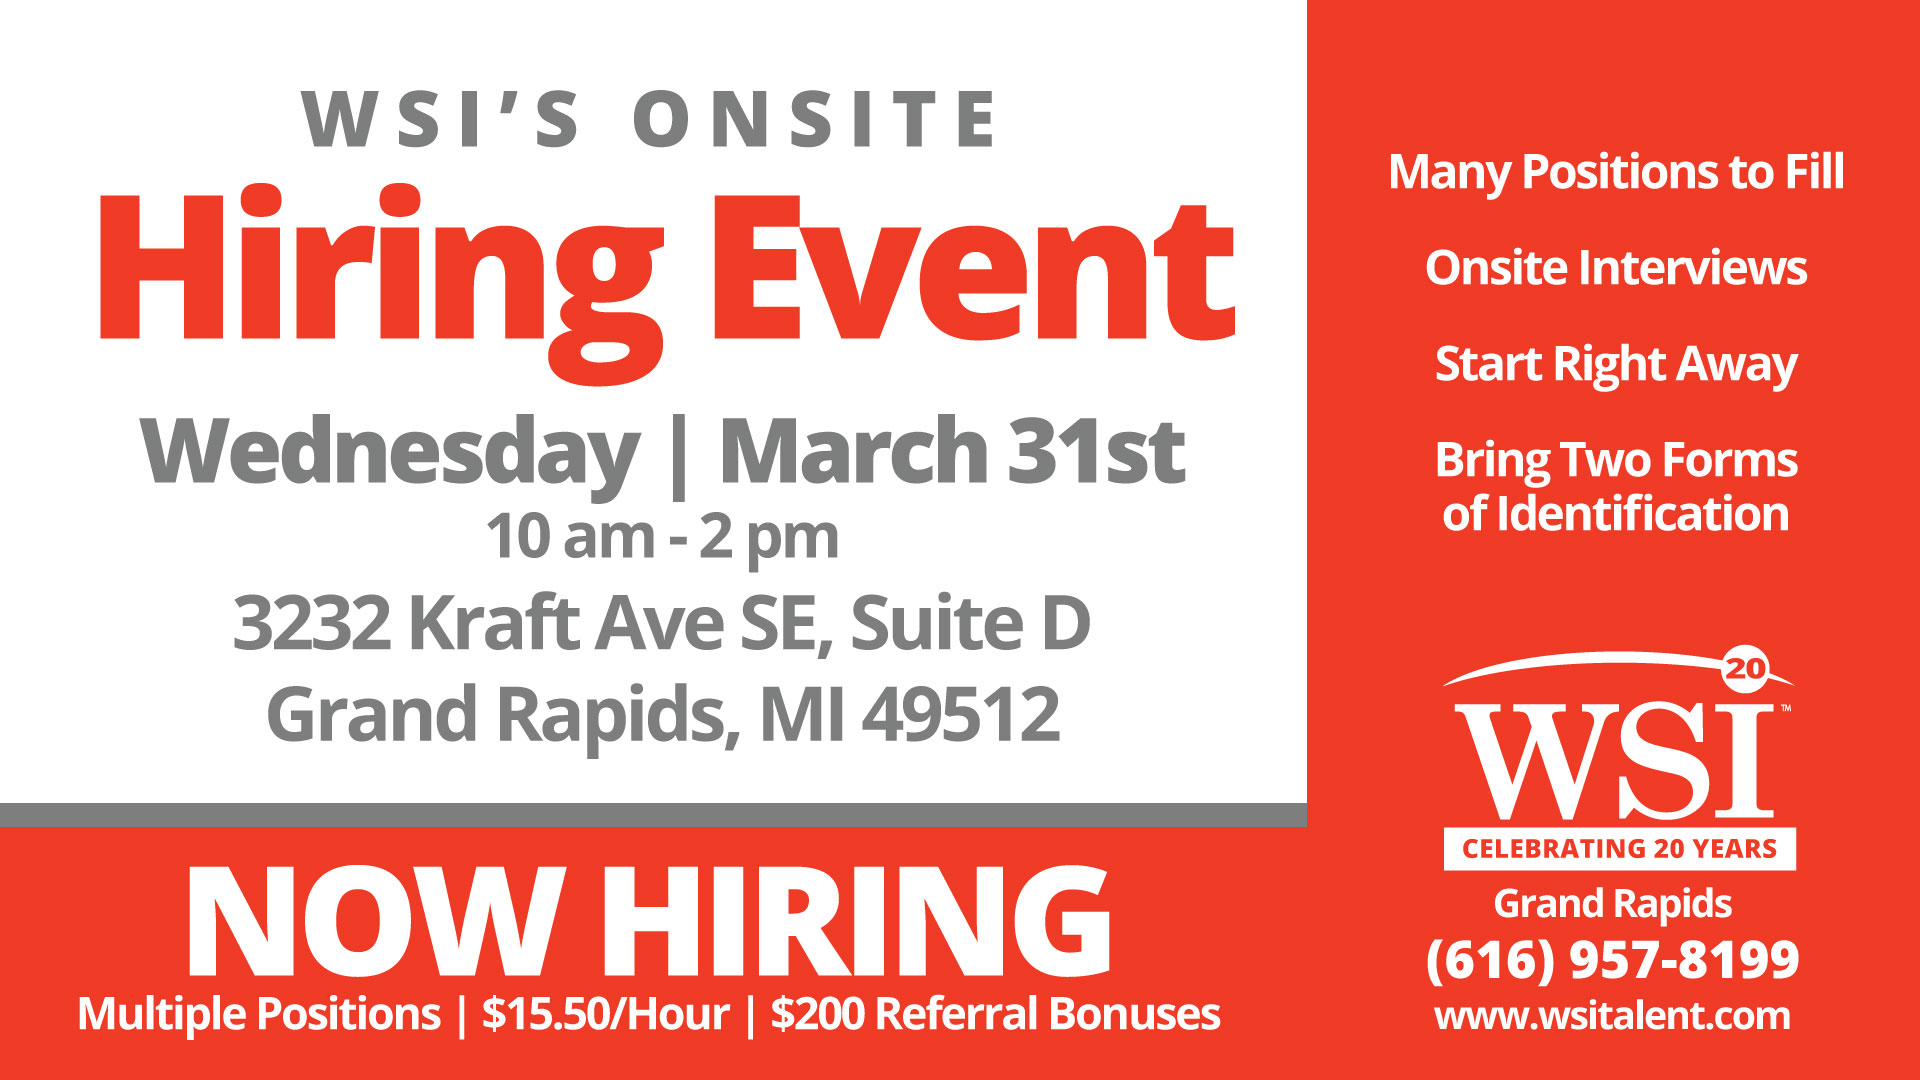 WSI Grand Rapids Onsite Hiring Event